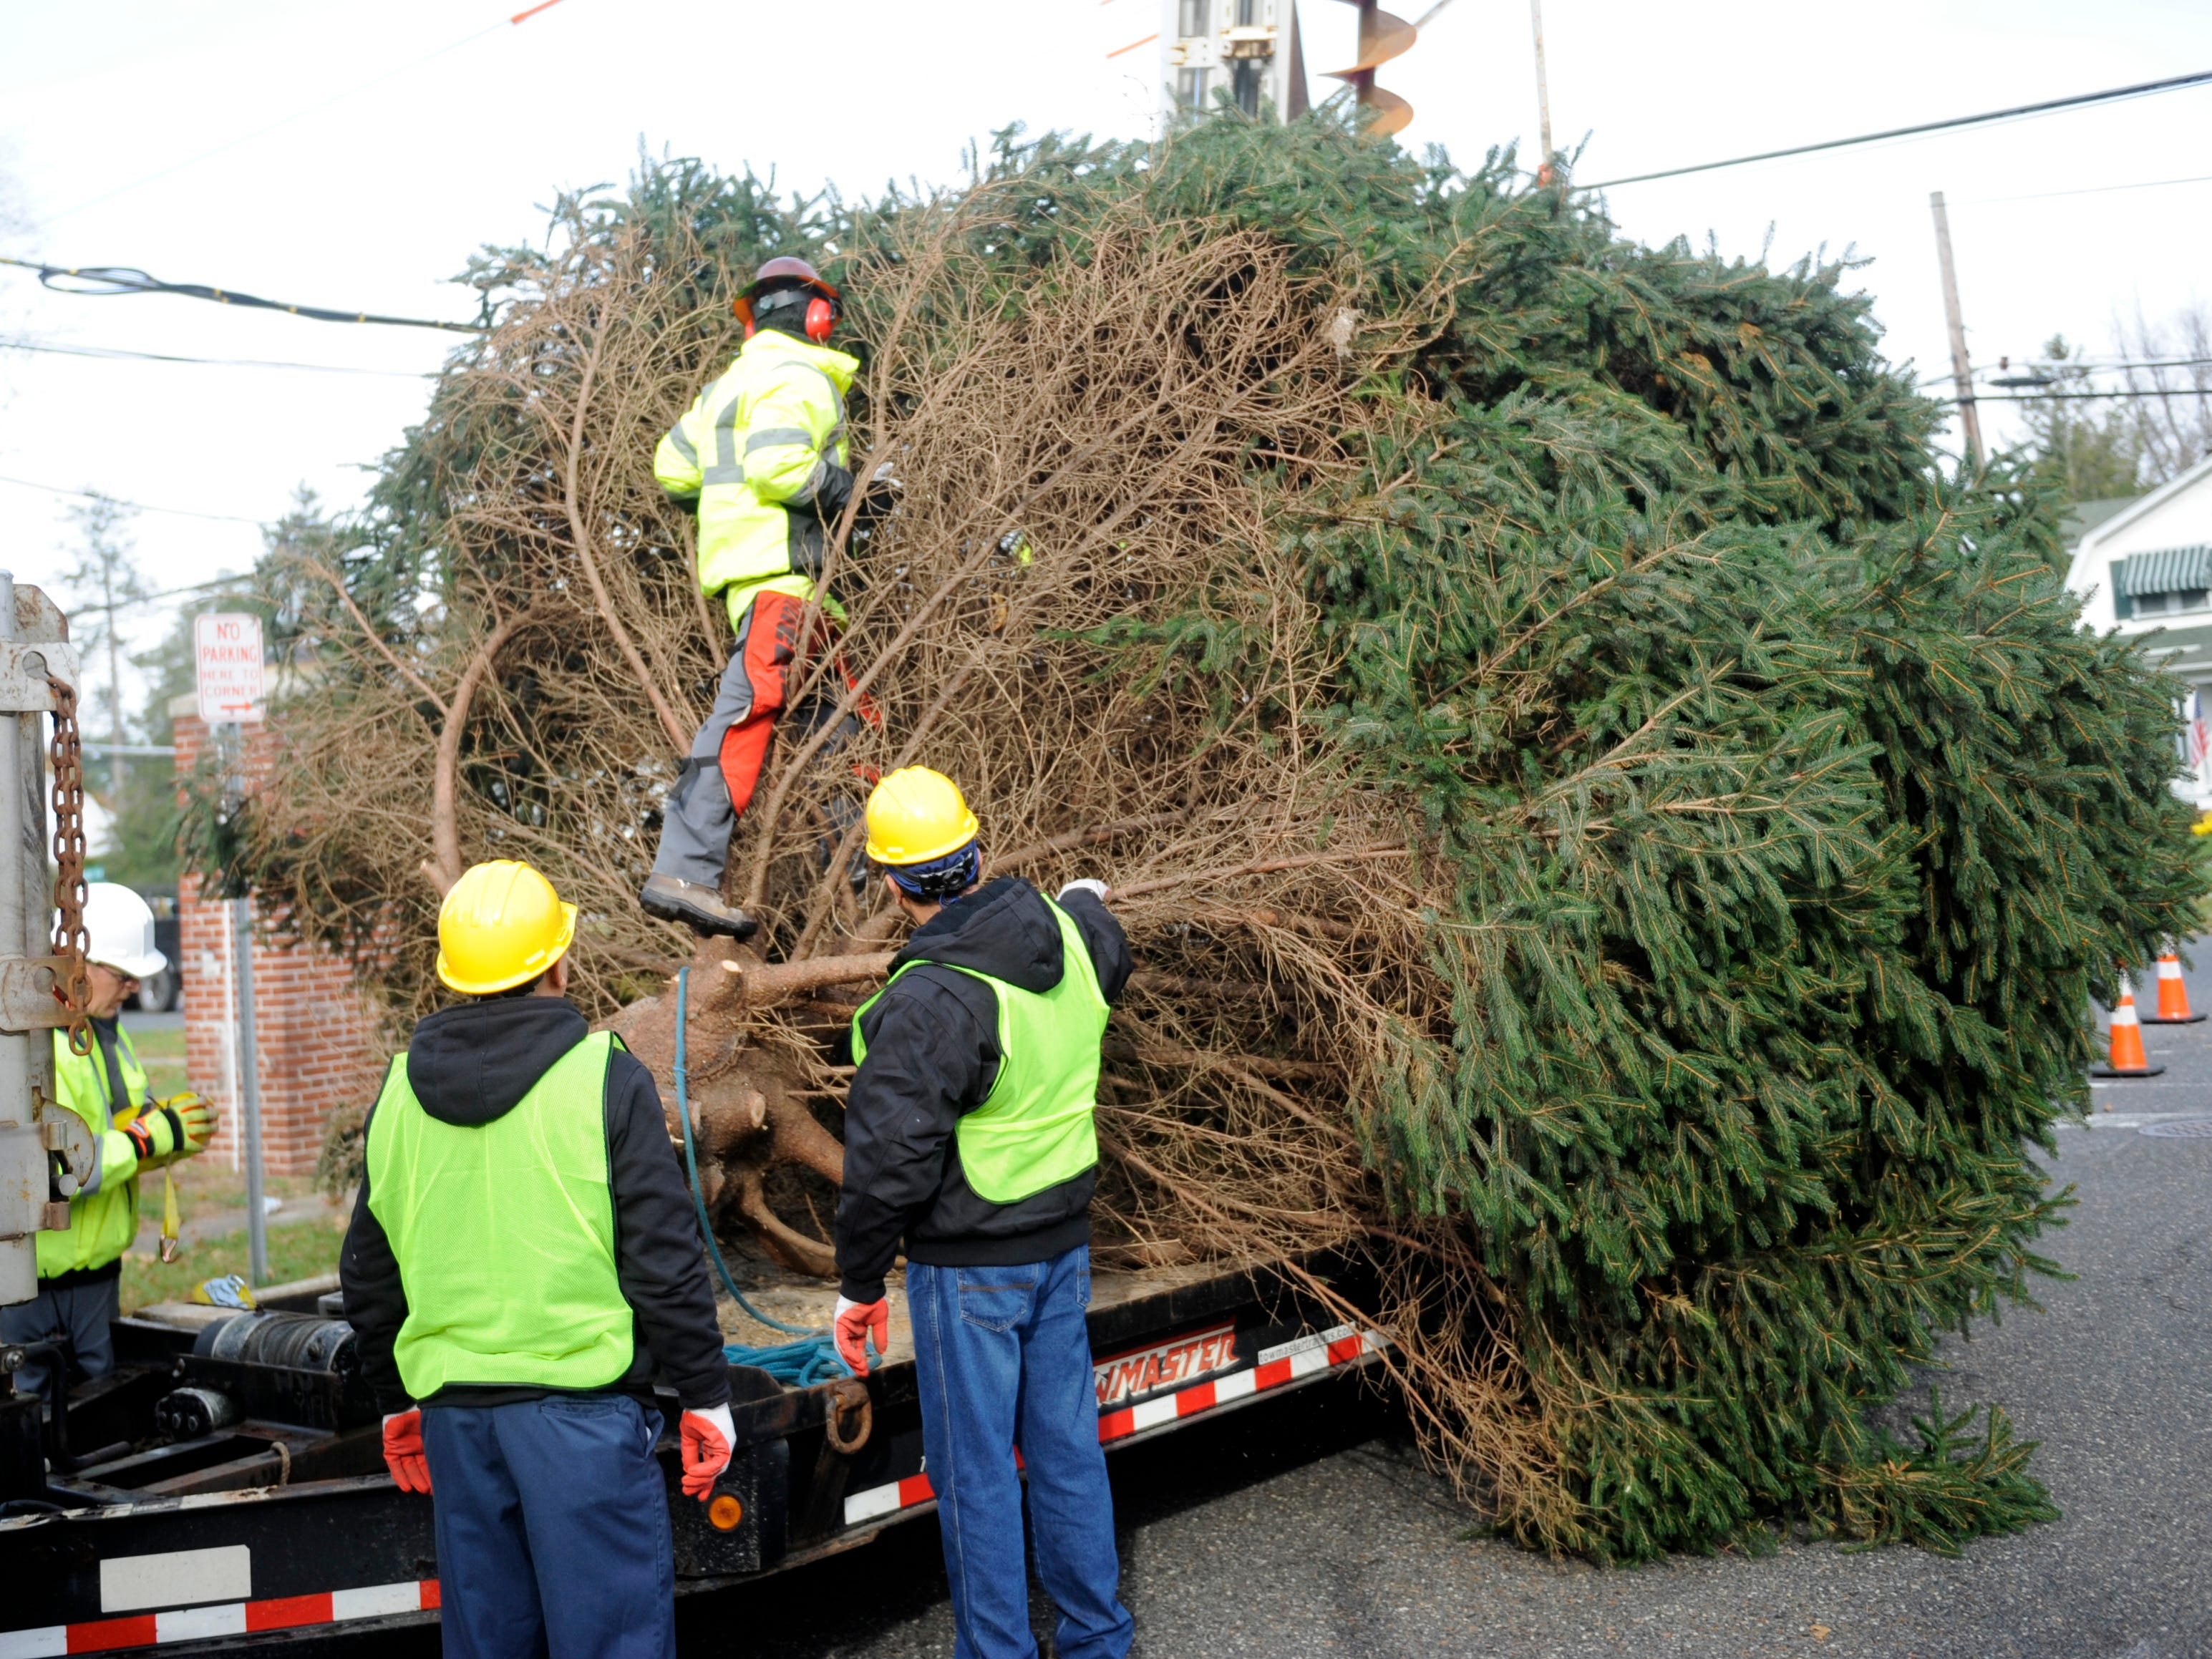 Vineland public works employees secure a donated Christmas tree to a trailer before transporting it to city hall on Monday, November 19, 2018.